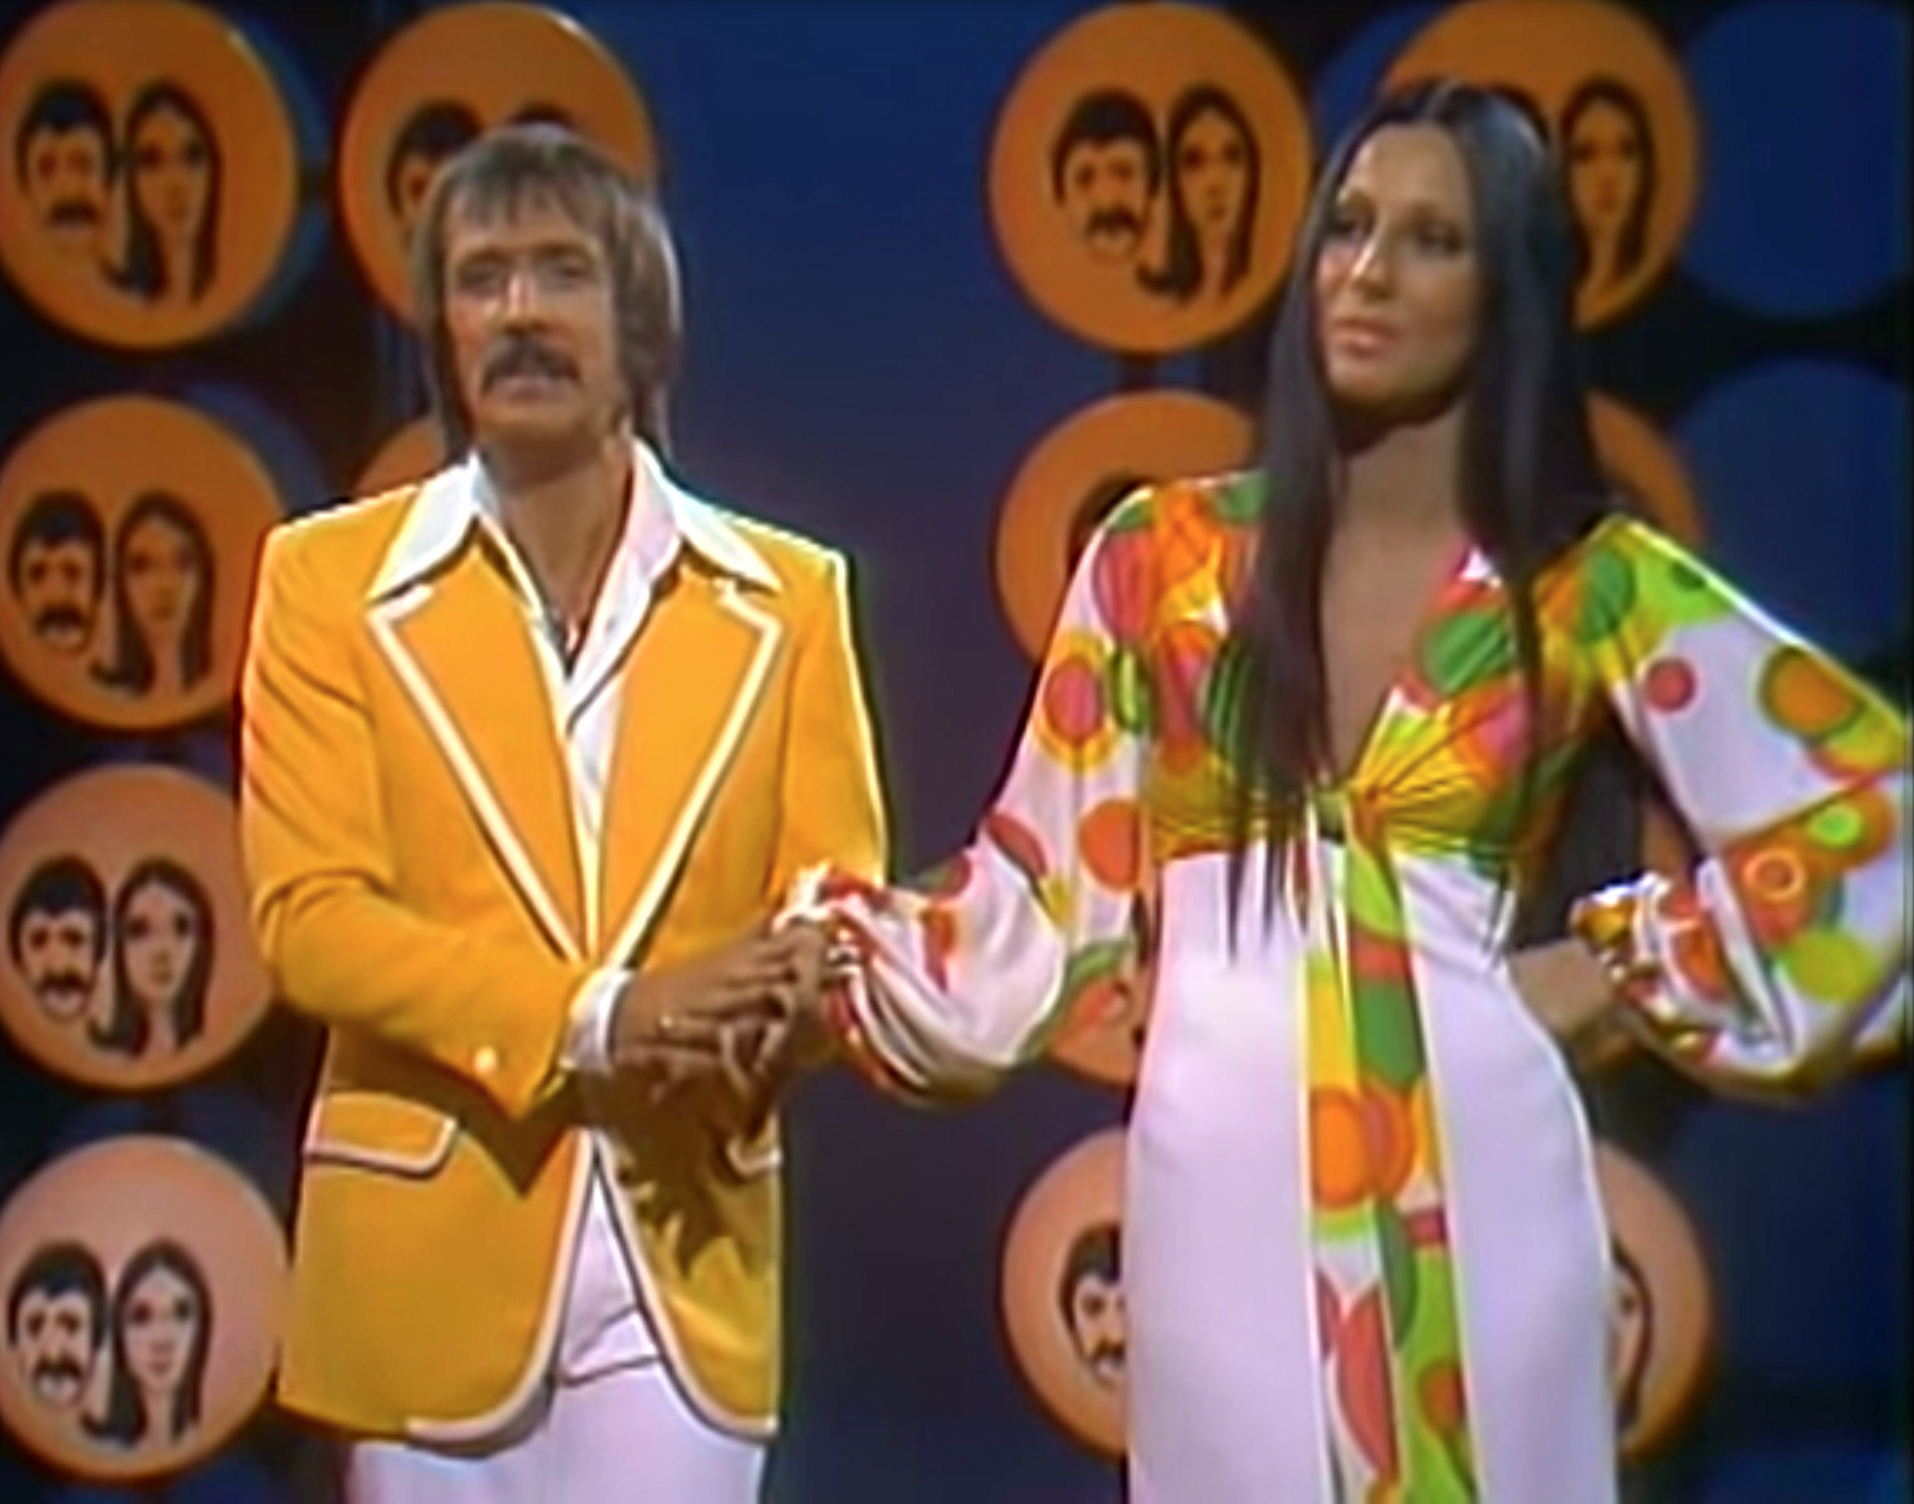 Sonny Bono and Cher on The Sonny and Cher Show